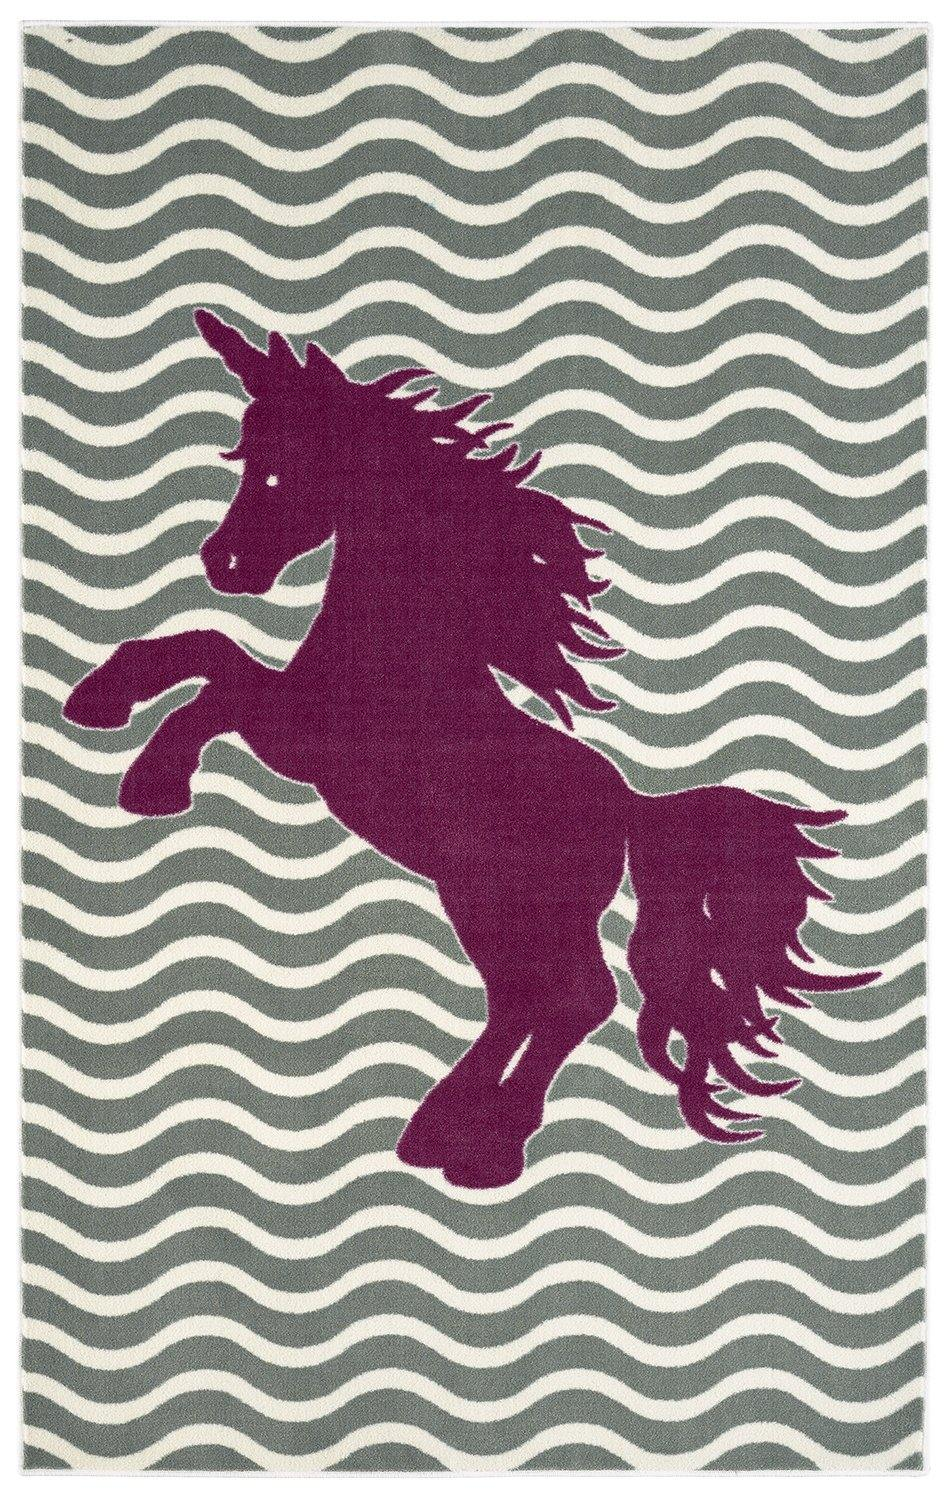 Mohawk Aurora (Kids) Majestic Unicorn Royal 12393-235 Area Rug